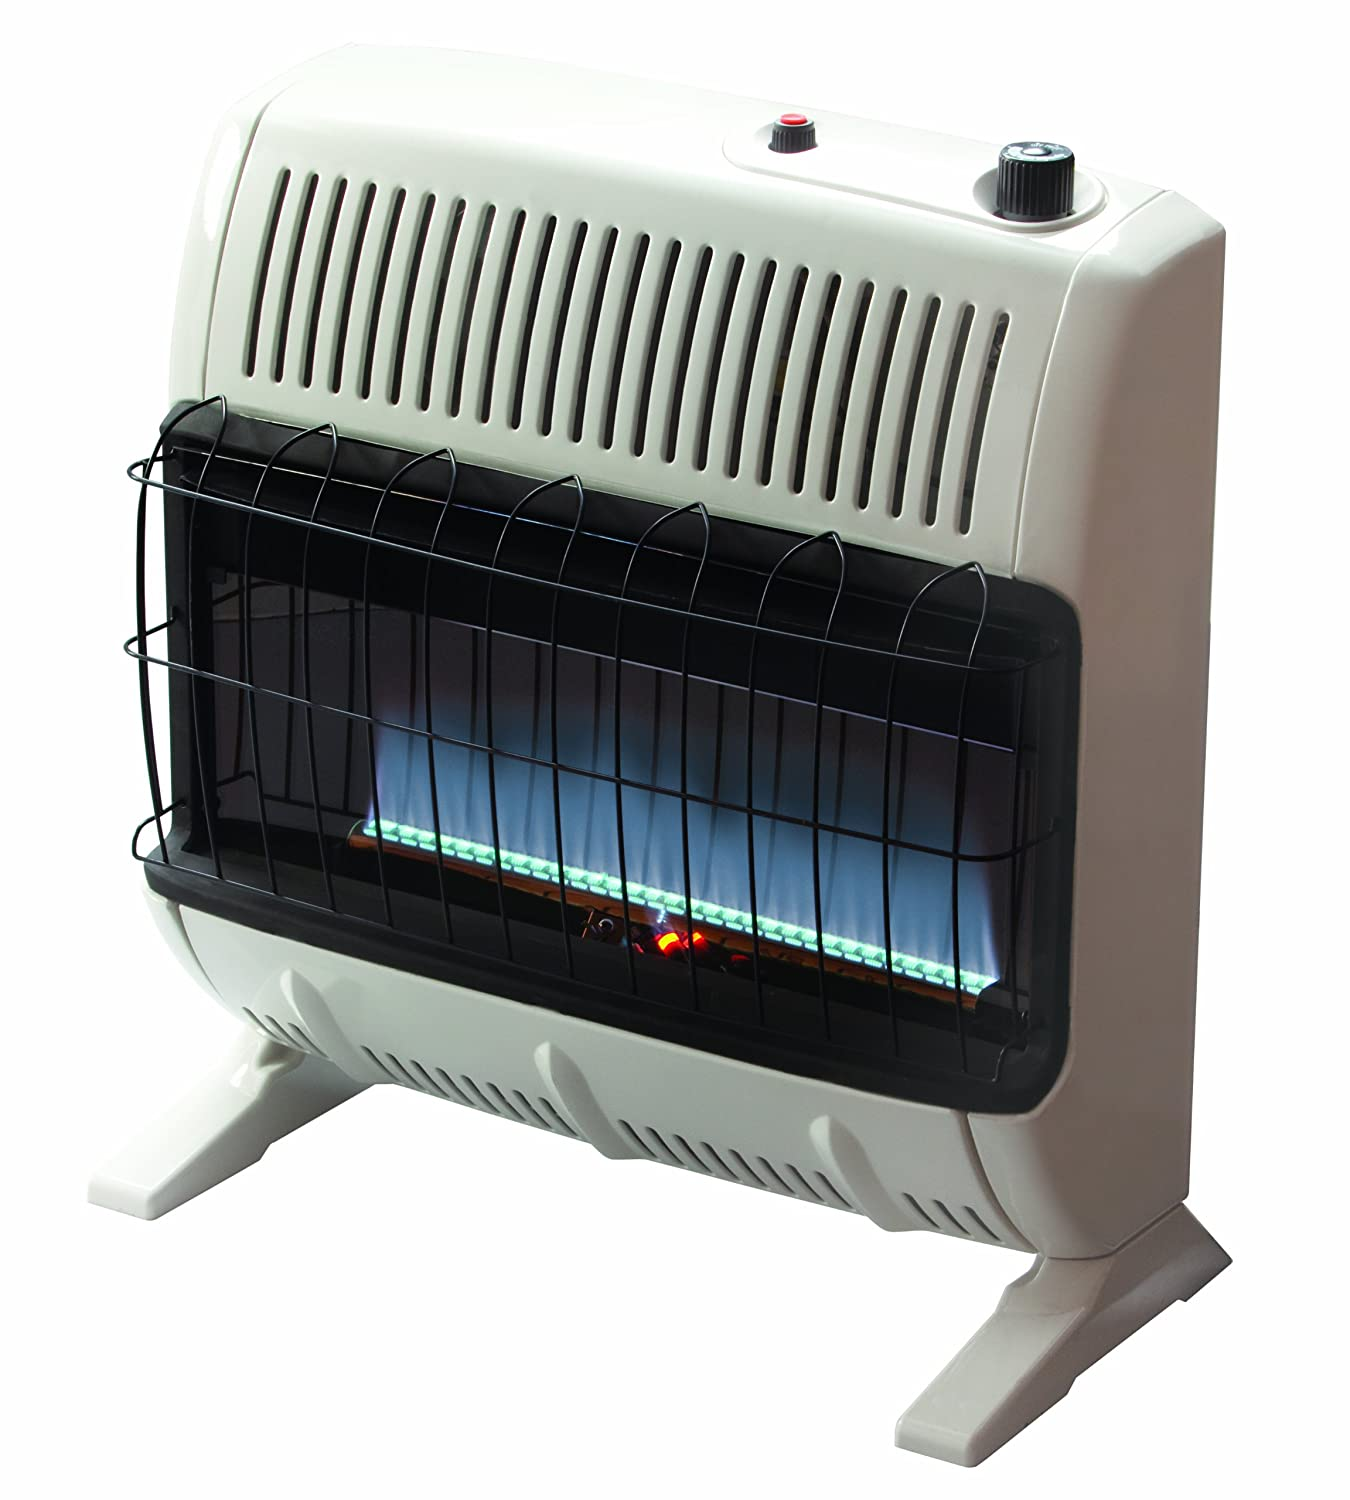 amazon com mr heater 30 000 btu natural gas blue flame vent free